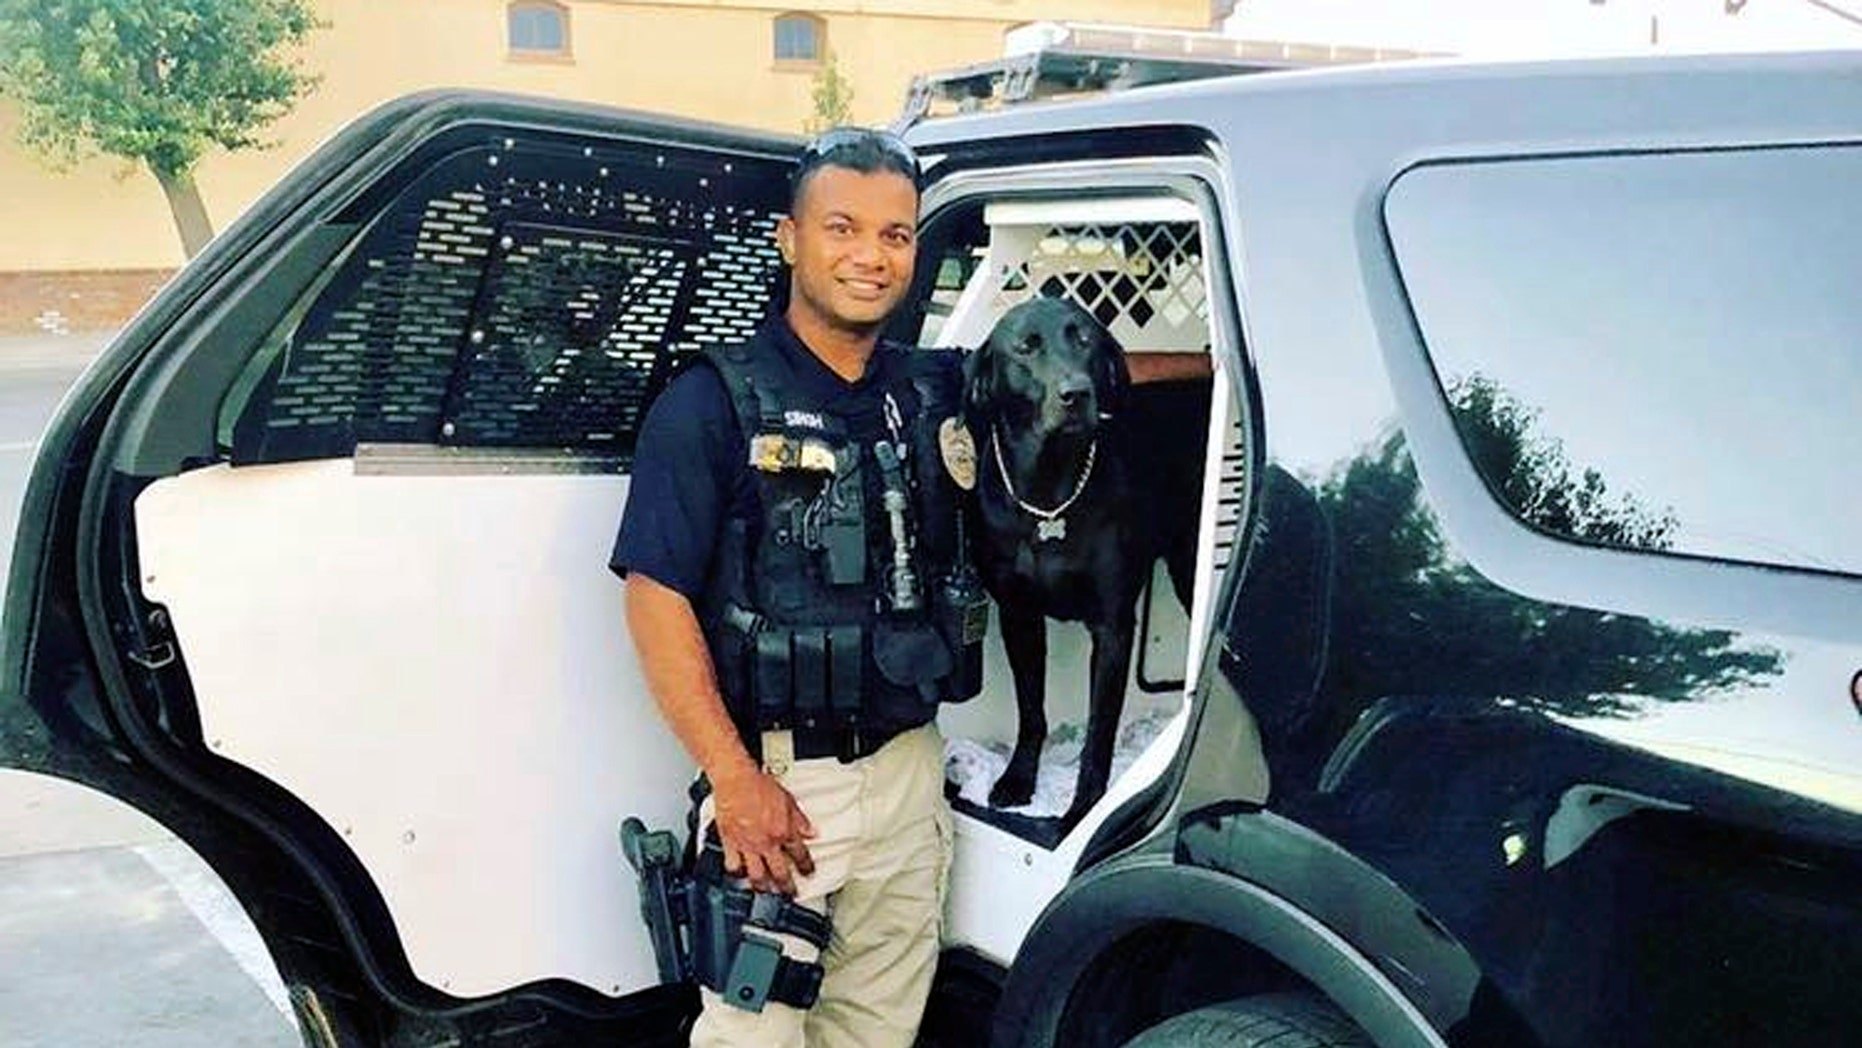 Fiji-born police officer killed in California